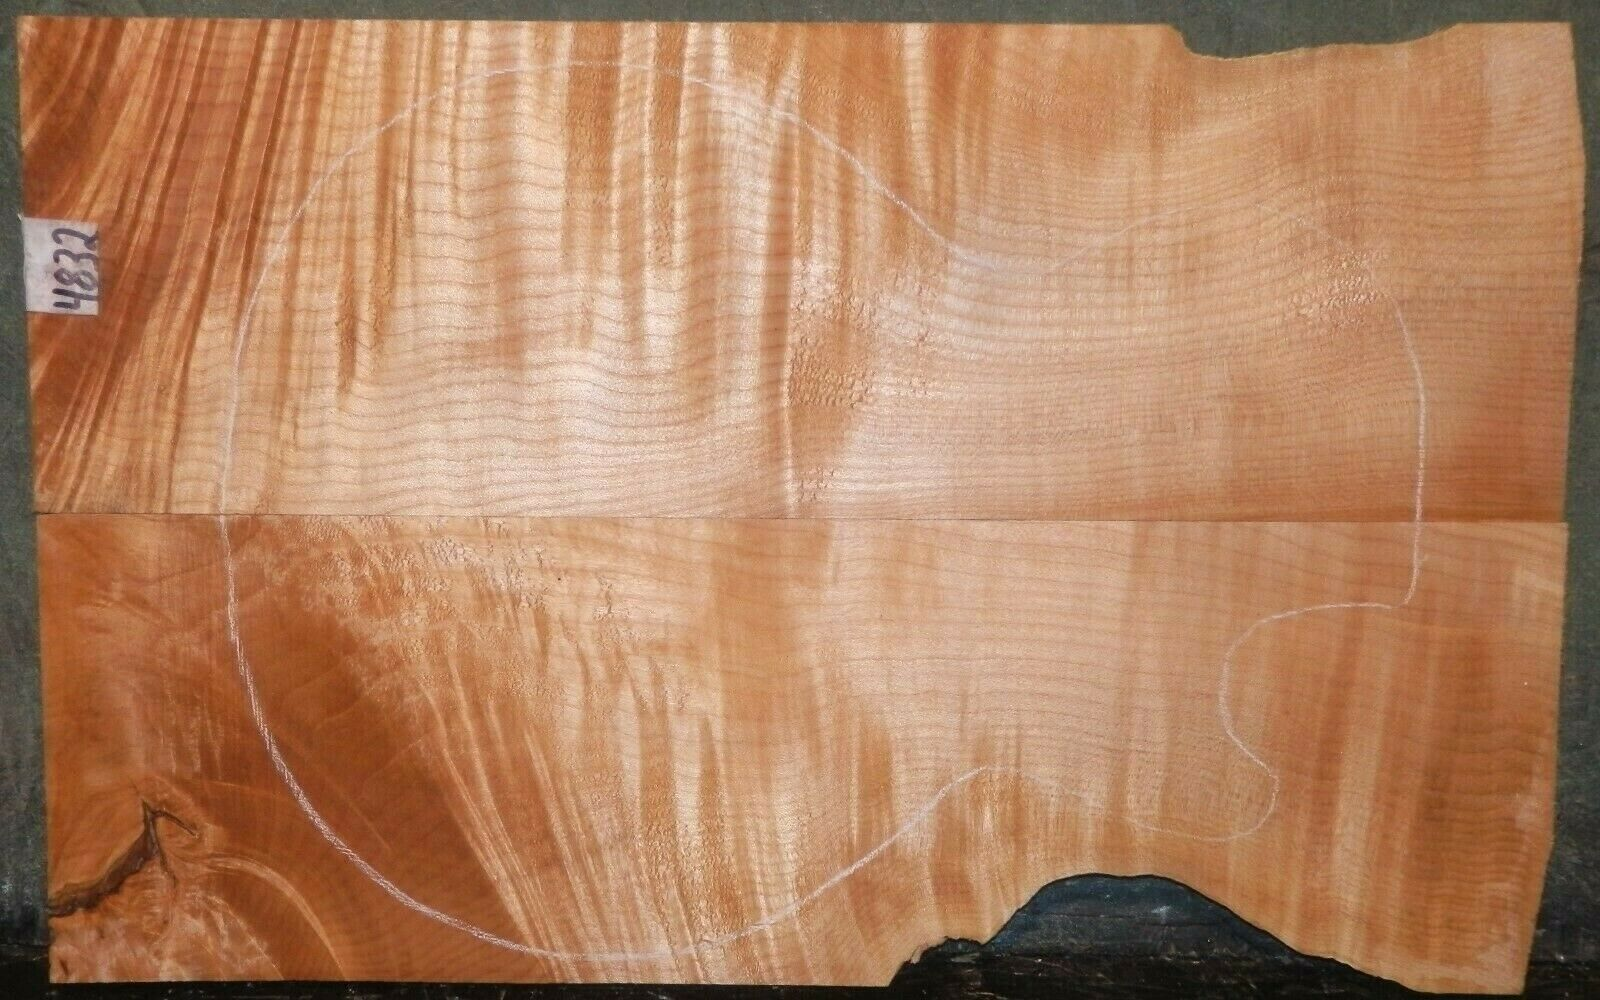 Flame Tiger Curly Maple Wood 4832 Luthier Carved Top Guitar set 22 x 14 x 5 8